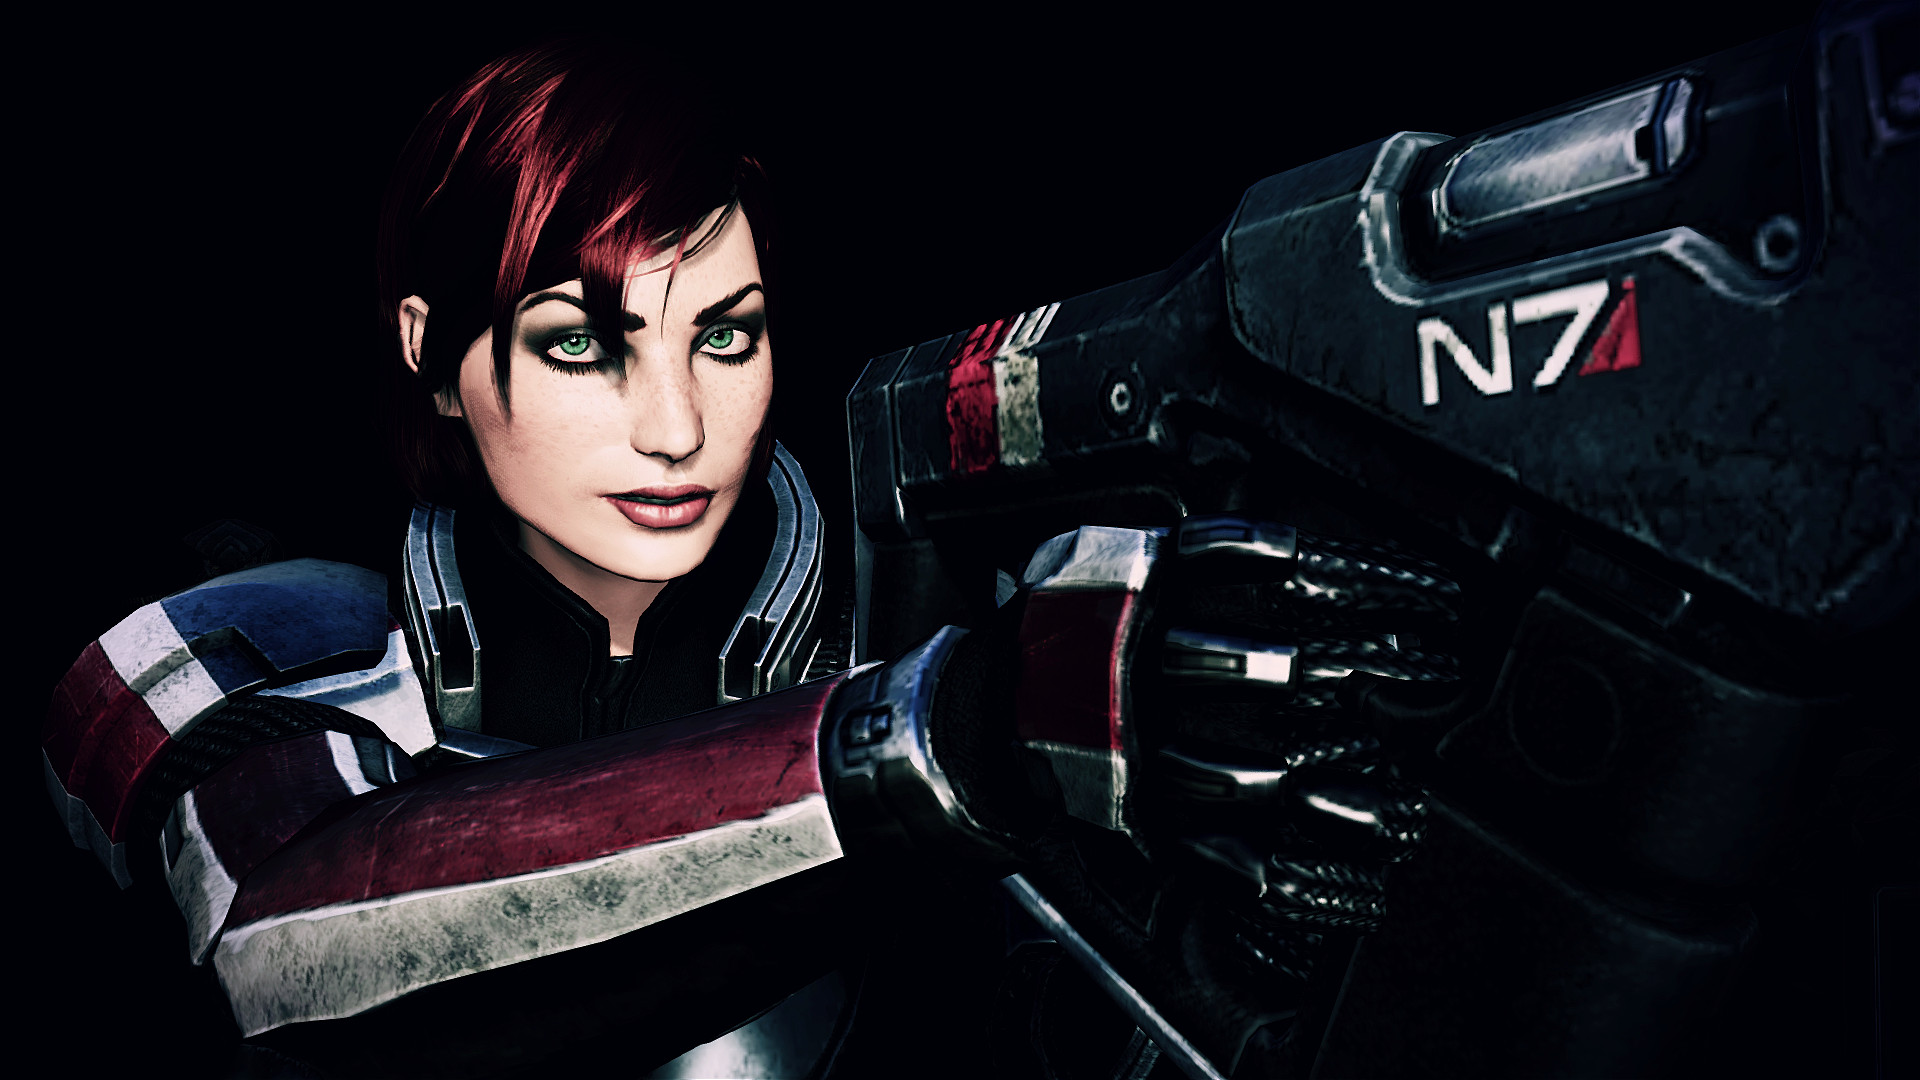 lieutenant_commander_shepard_03_by_johntesh-d50uh3v